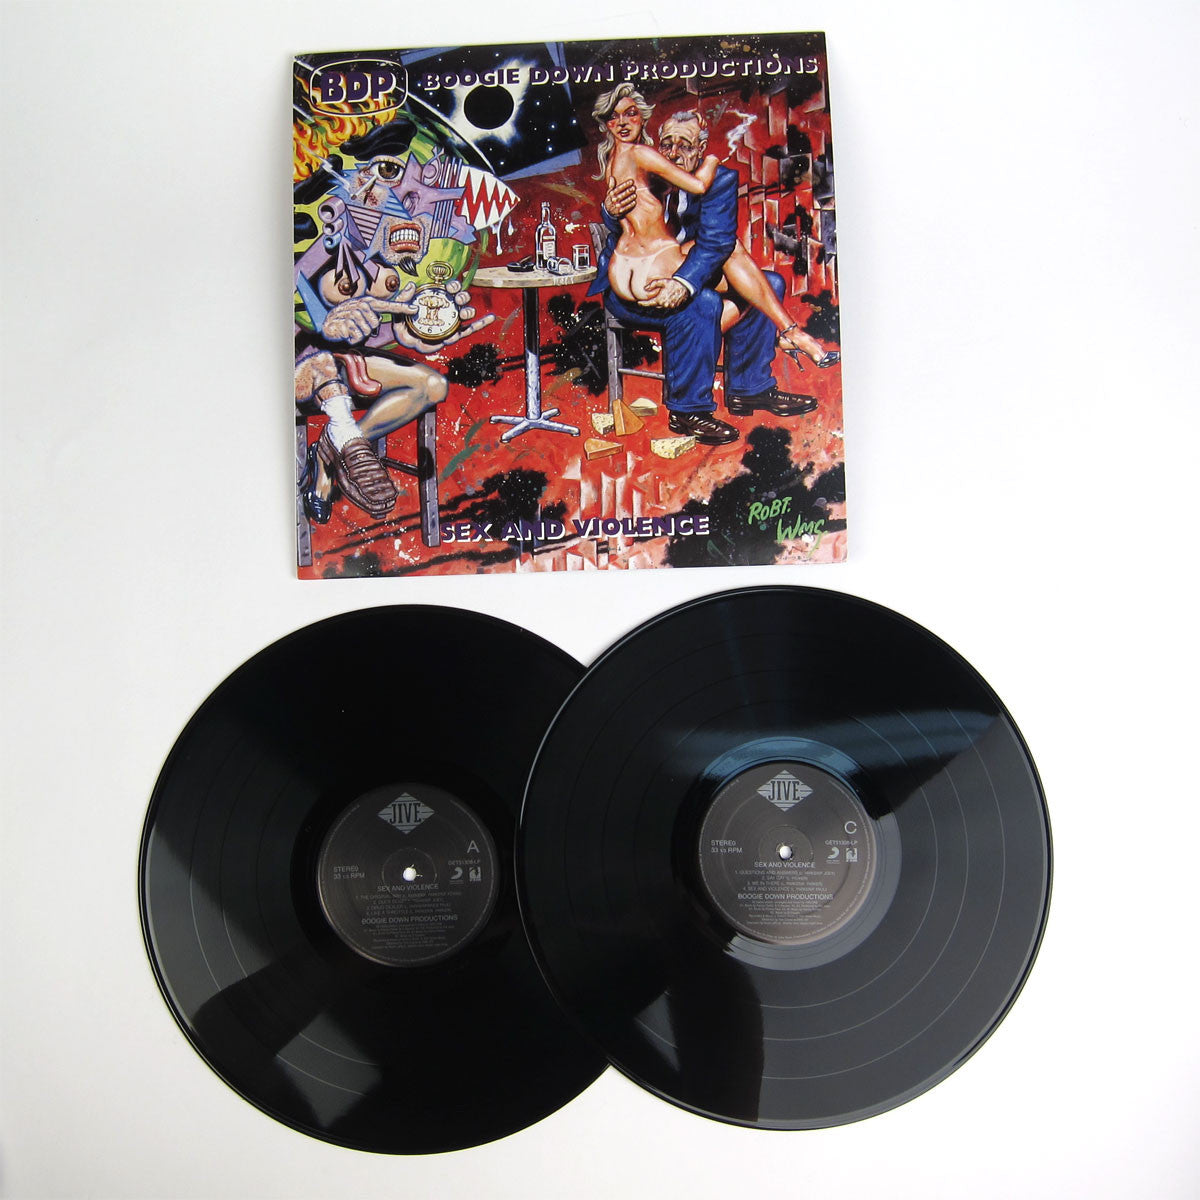 Boogie Down Productions: Sex & Violence Vinyl 2LP